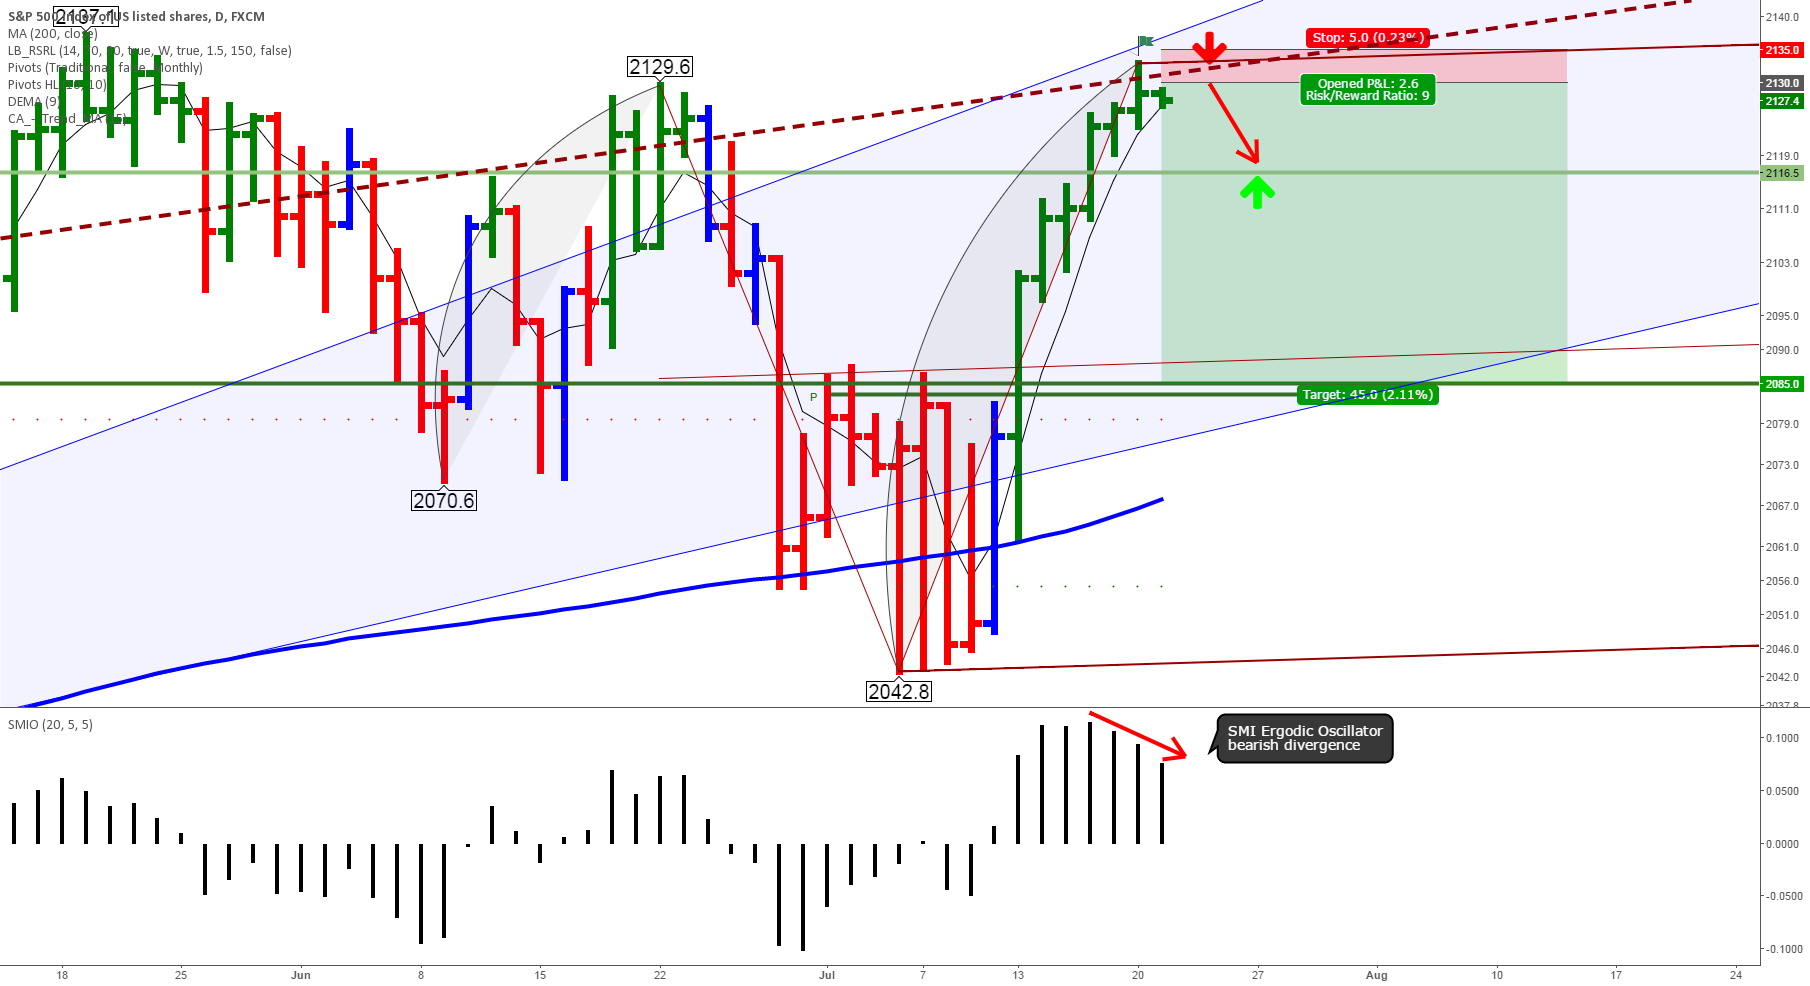 Short S&P500 Tuesday/Wednesday. Waiting for a higher short entry